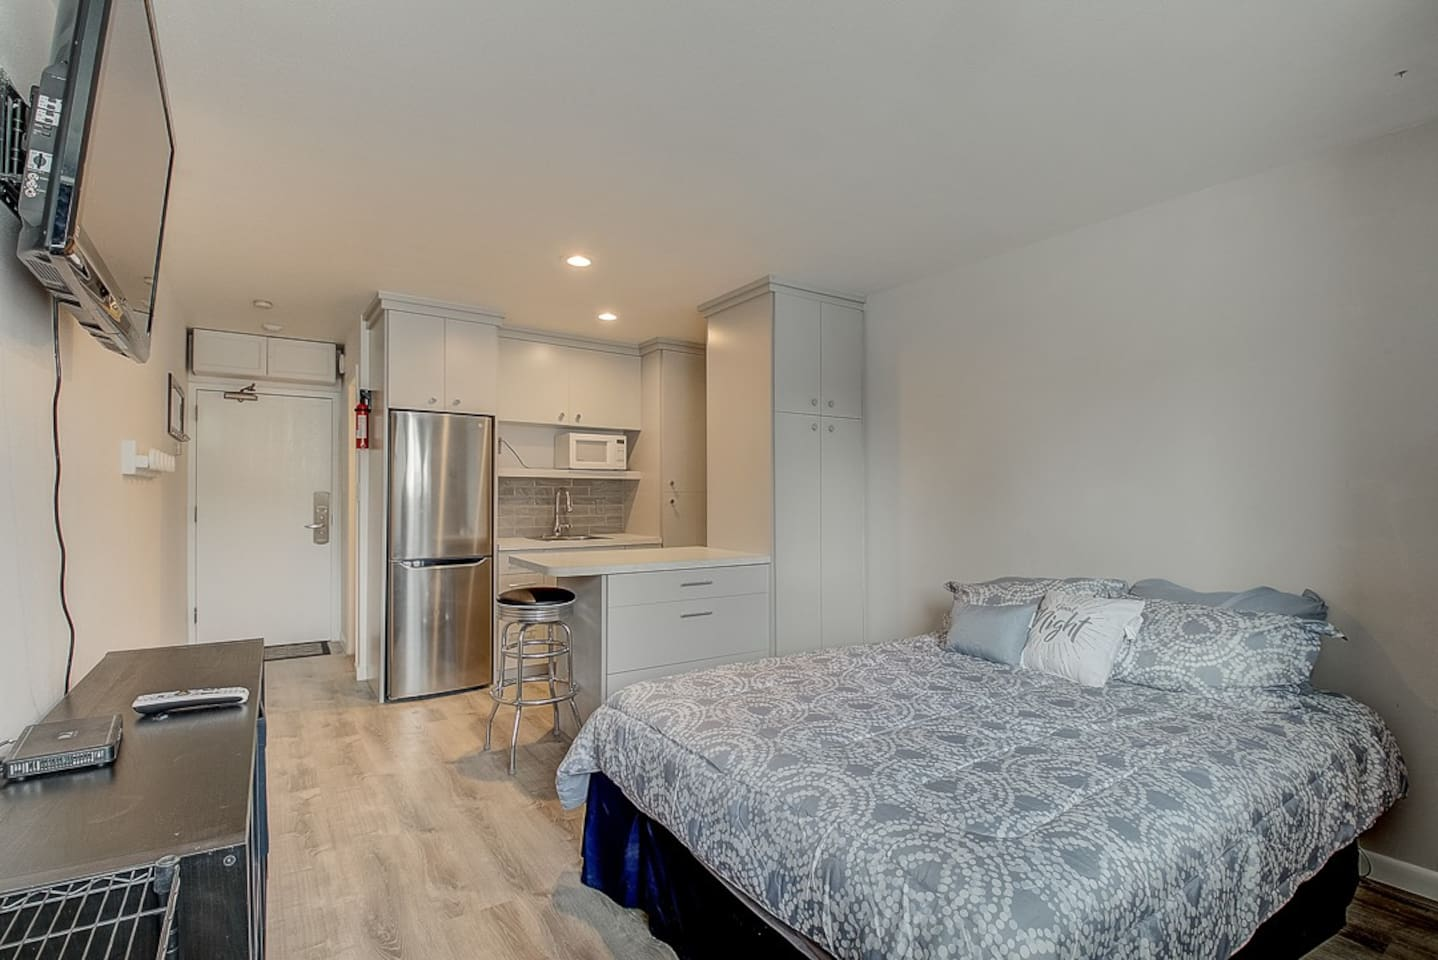 This photo shows a brand new Remote controlled adjustable queen size bed, kitchenette, workspace, flatscreen remote control television, stainless steel fridge and freezer as well.